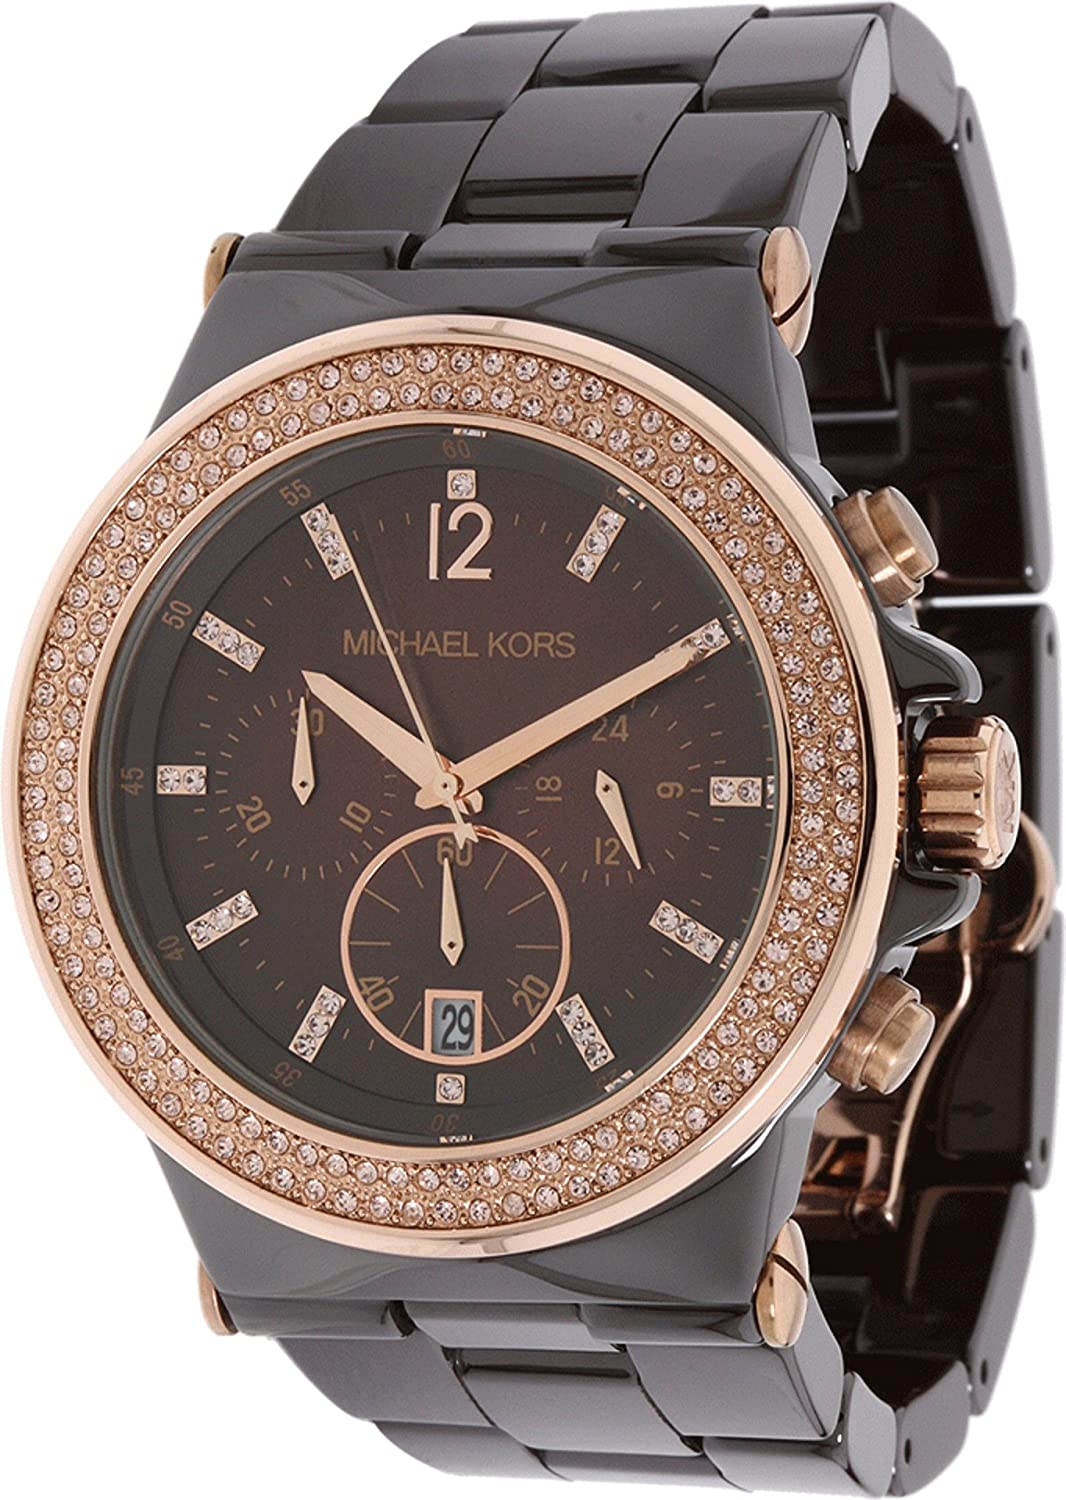 michael kors mk5518 s watches price in pakistan home